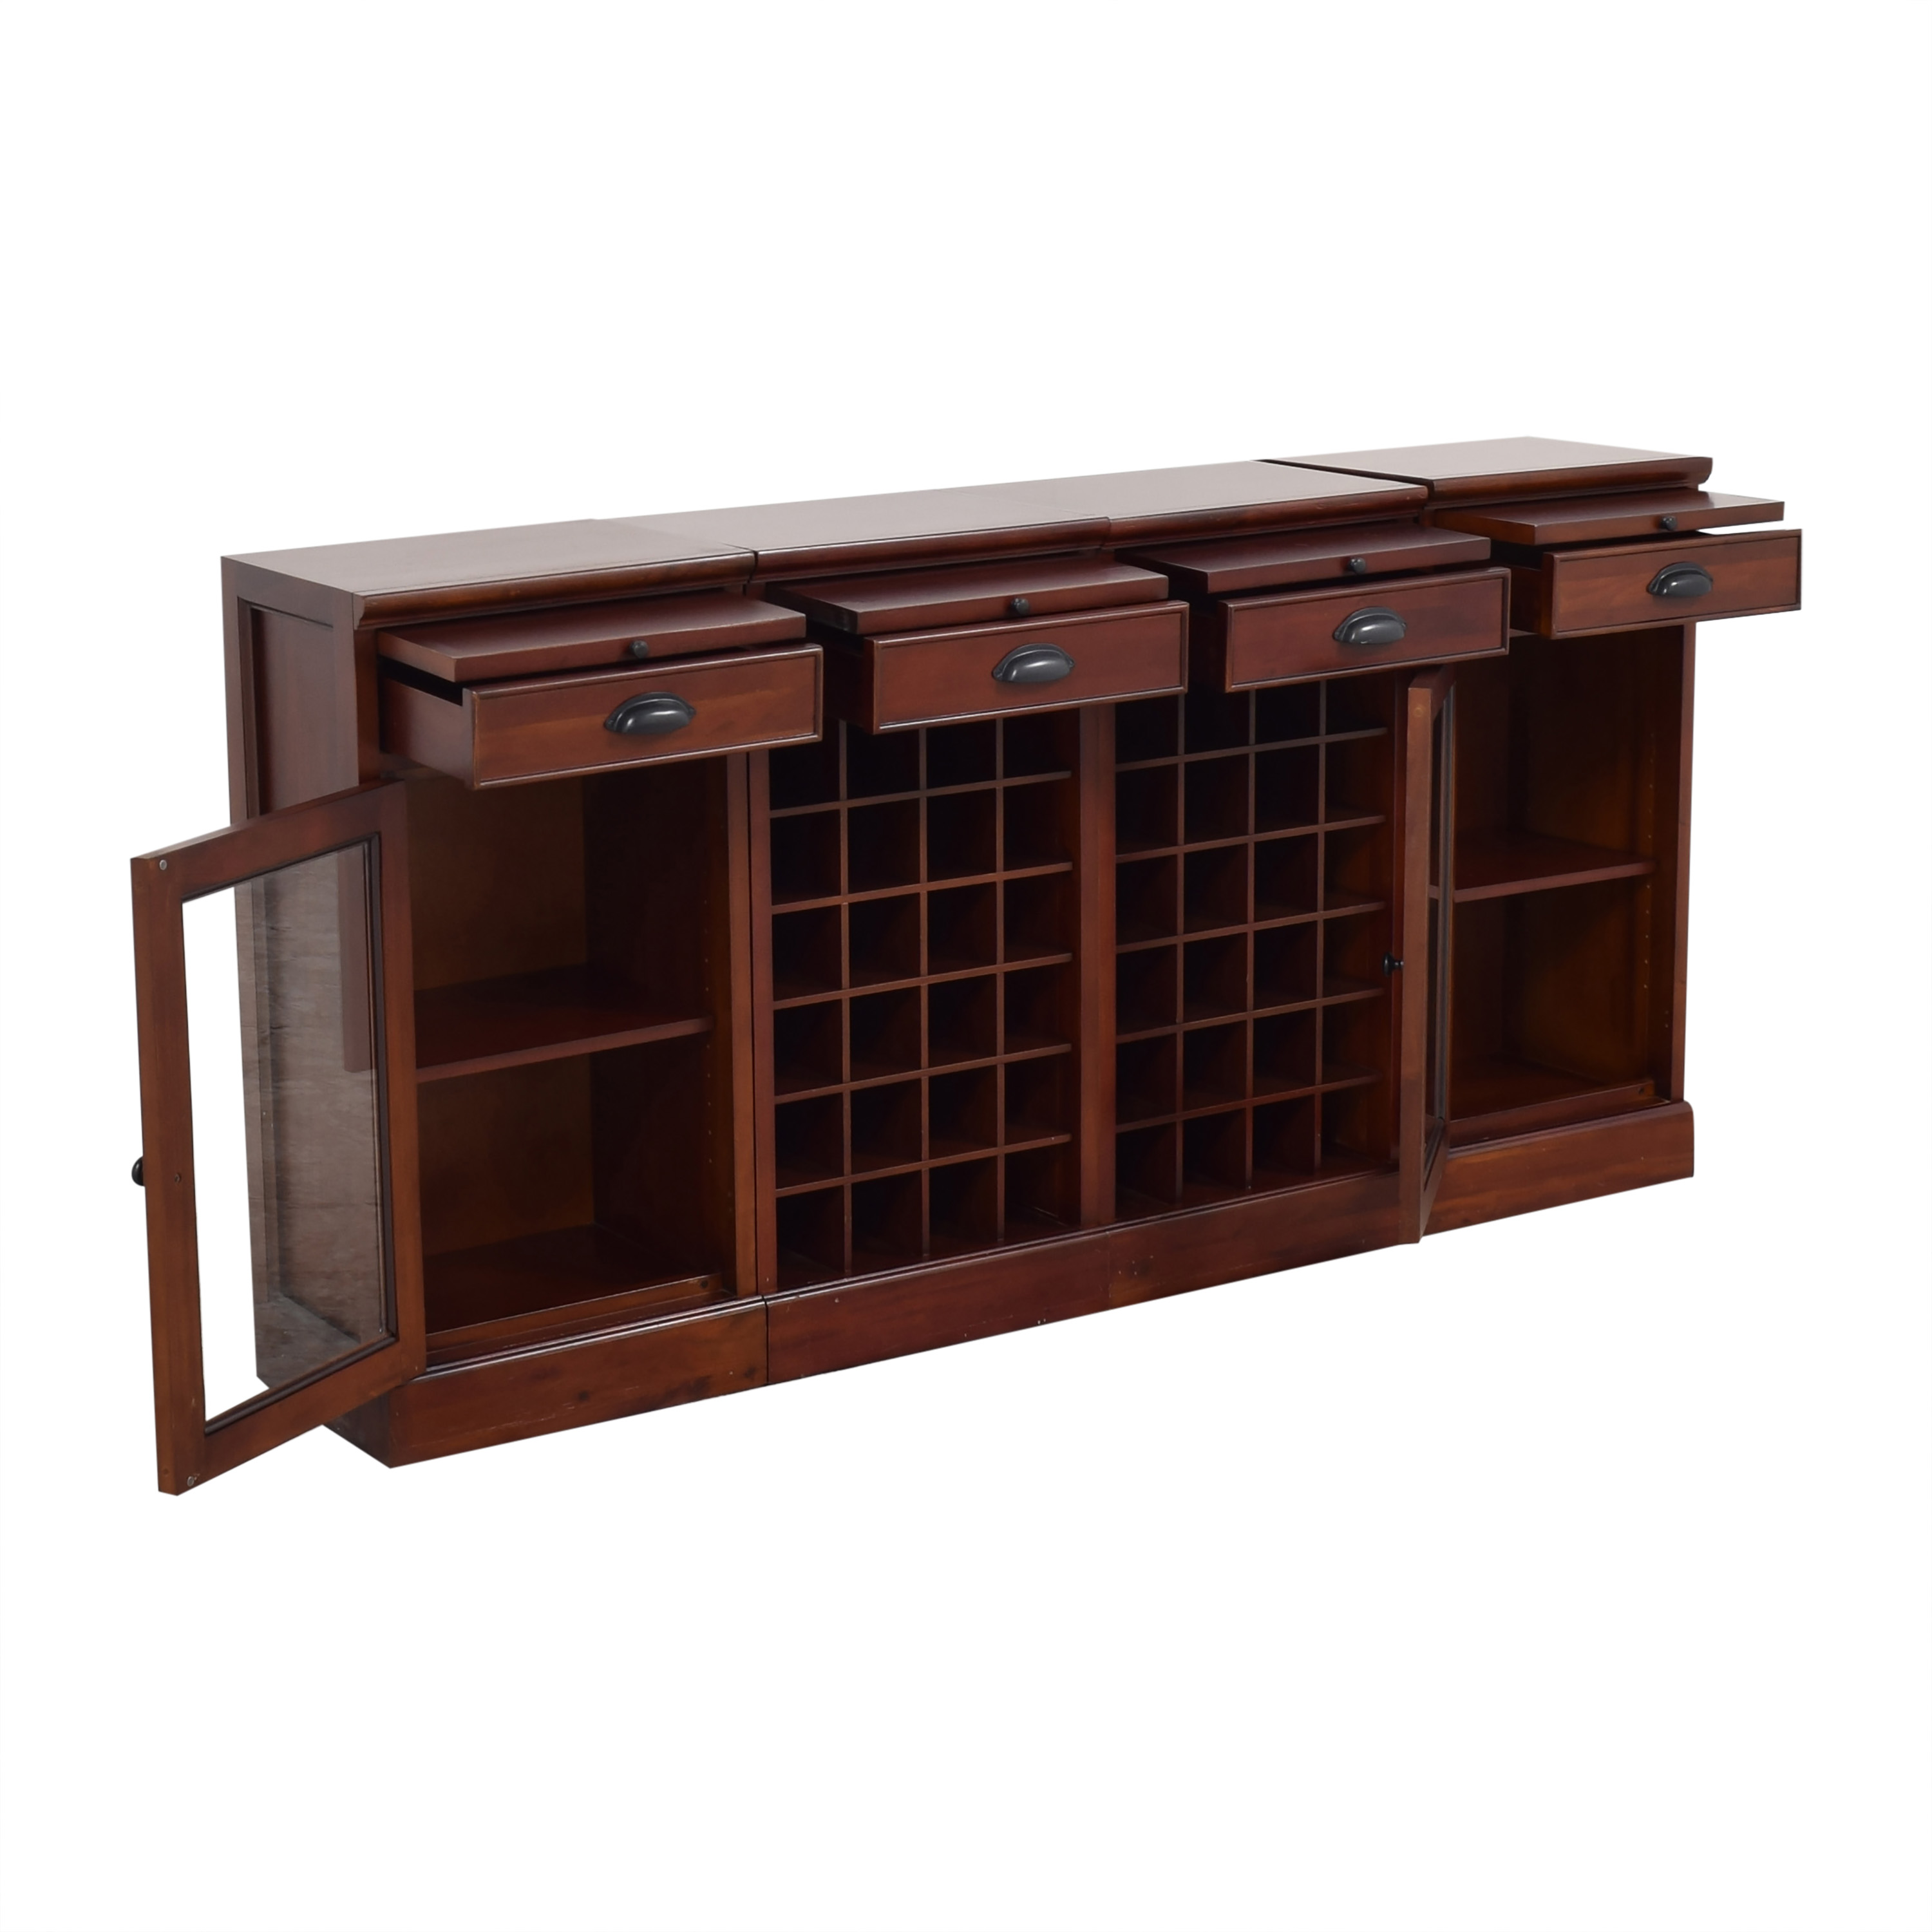 Pottery Barn Pottery Barn Modular Buffet with Double Wine Grid on sale